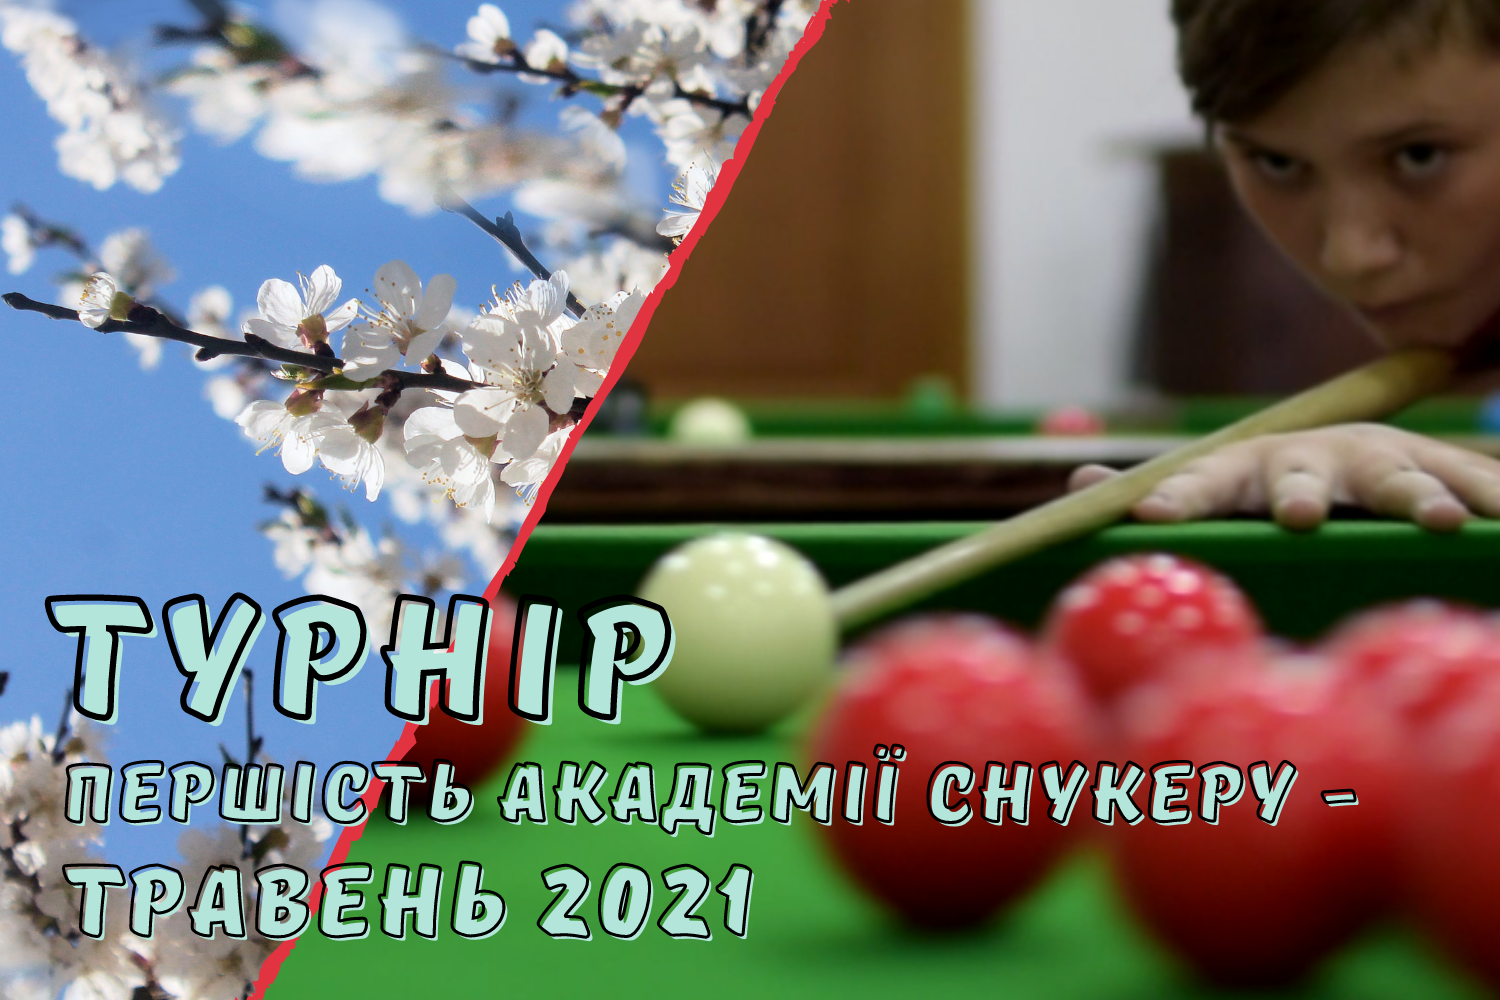 Kropyvnytskyi Snooker Academy Tournament -  May 2021